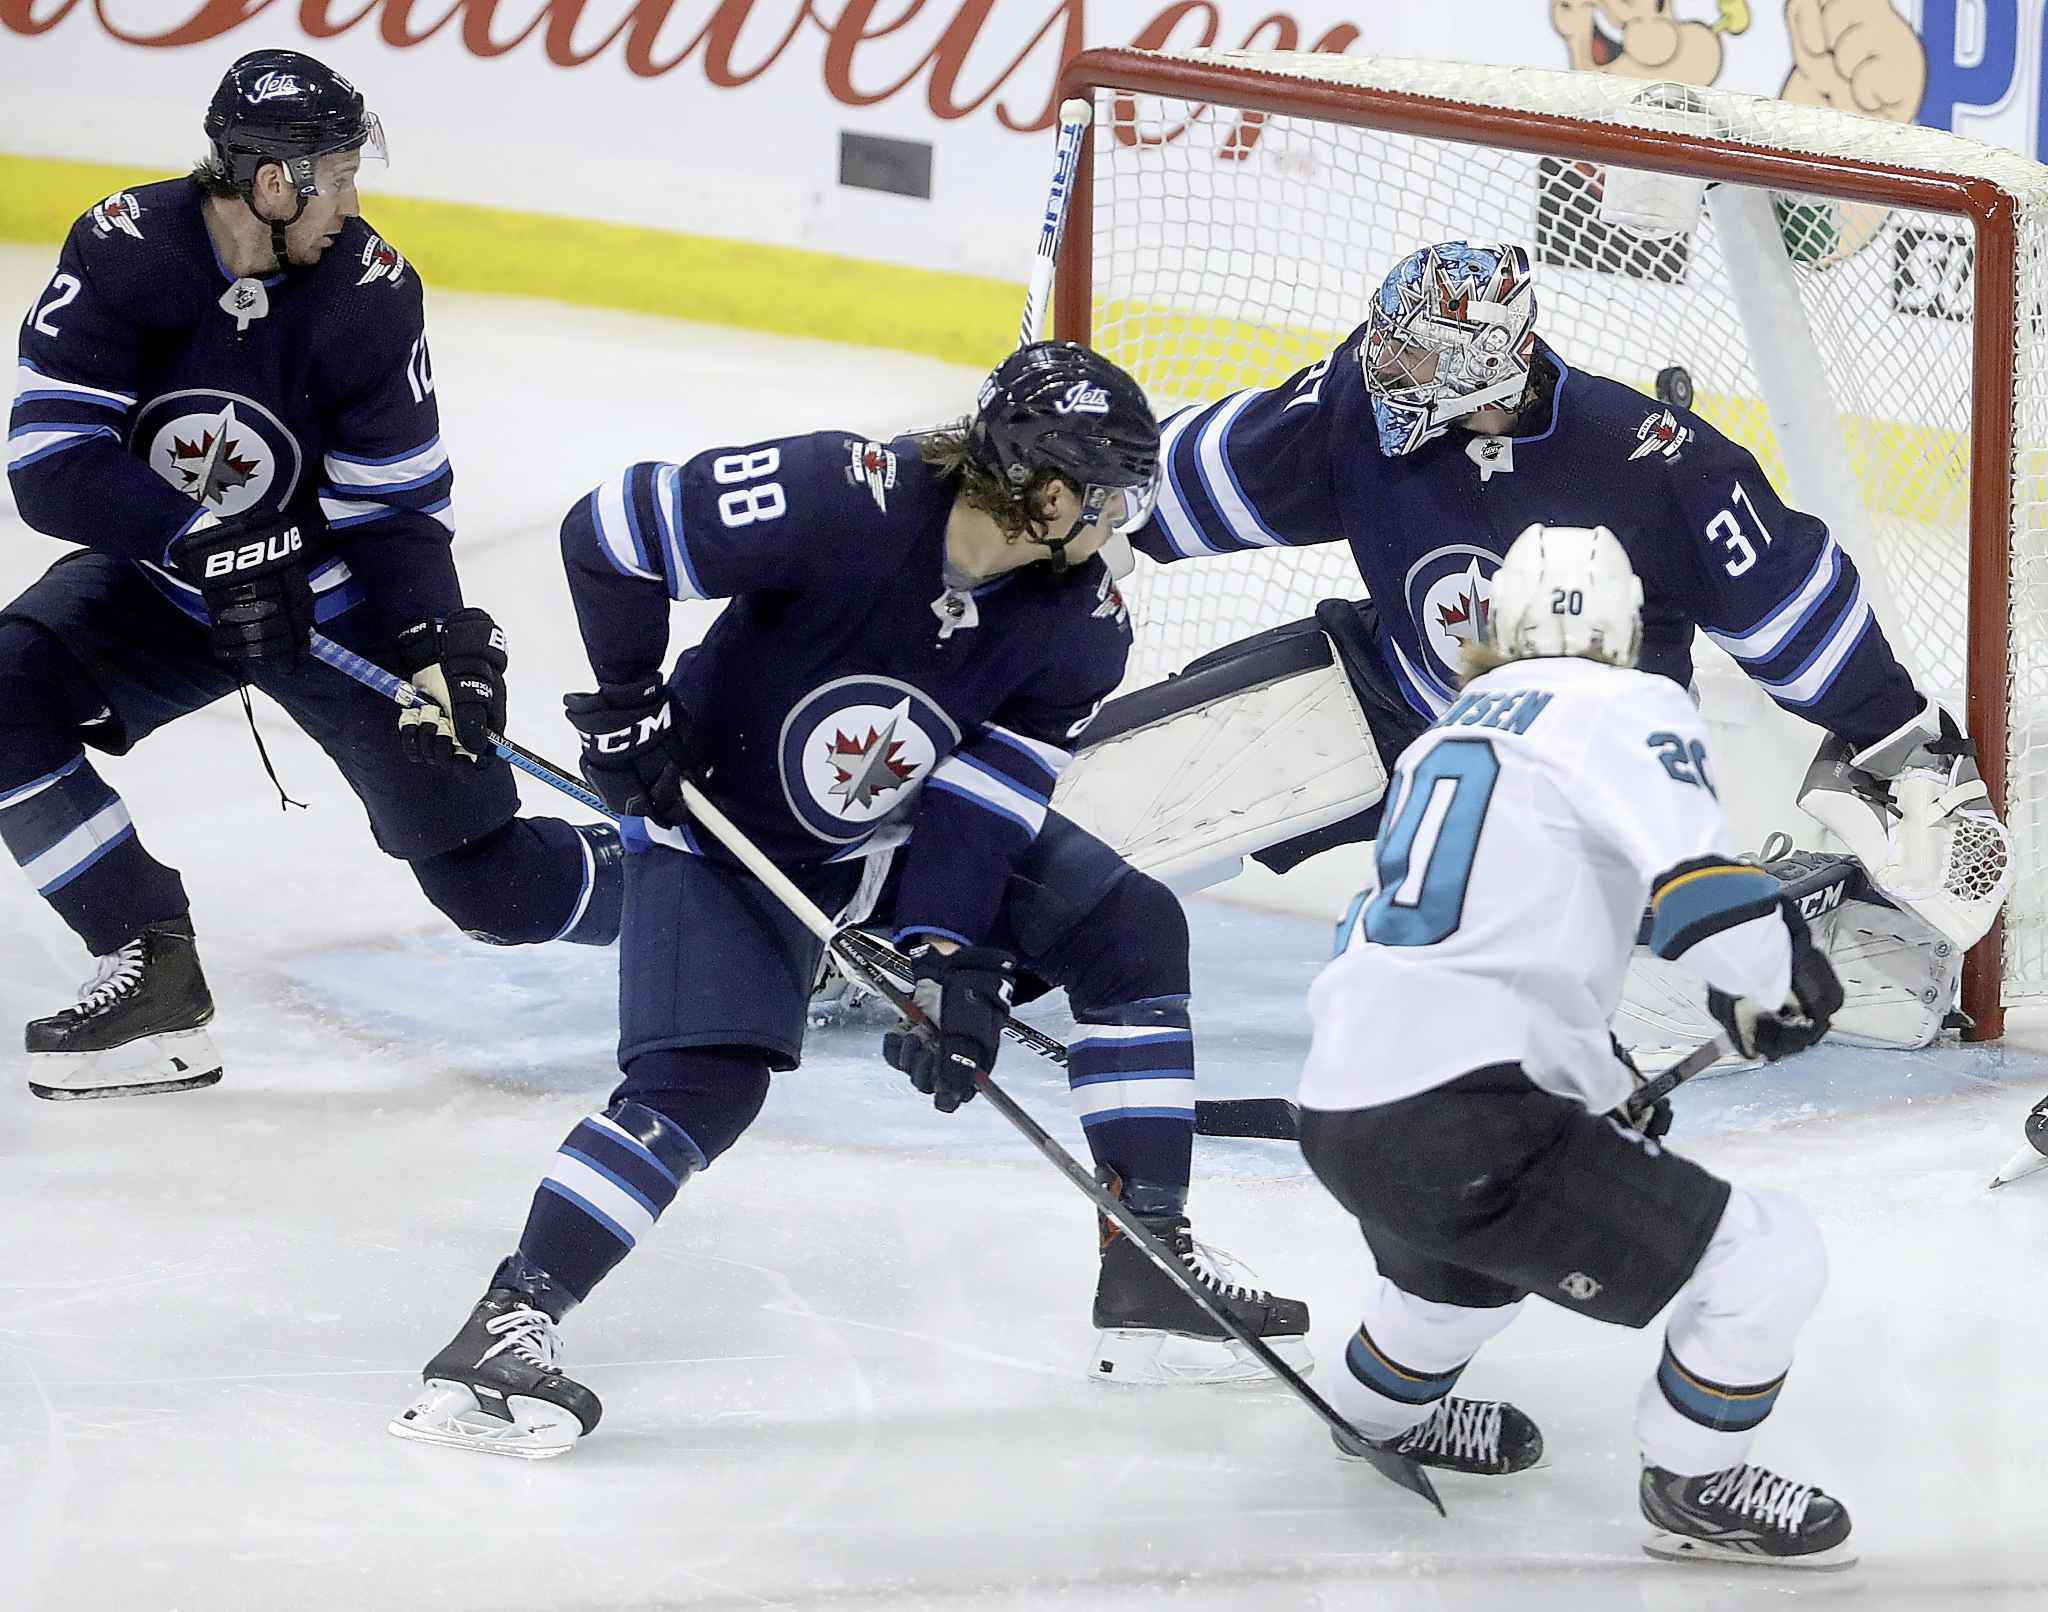 San Jose Sharks' Marcus Sorenson (20) scores on Connor Hellebuyck with four seconds left in the game.